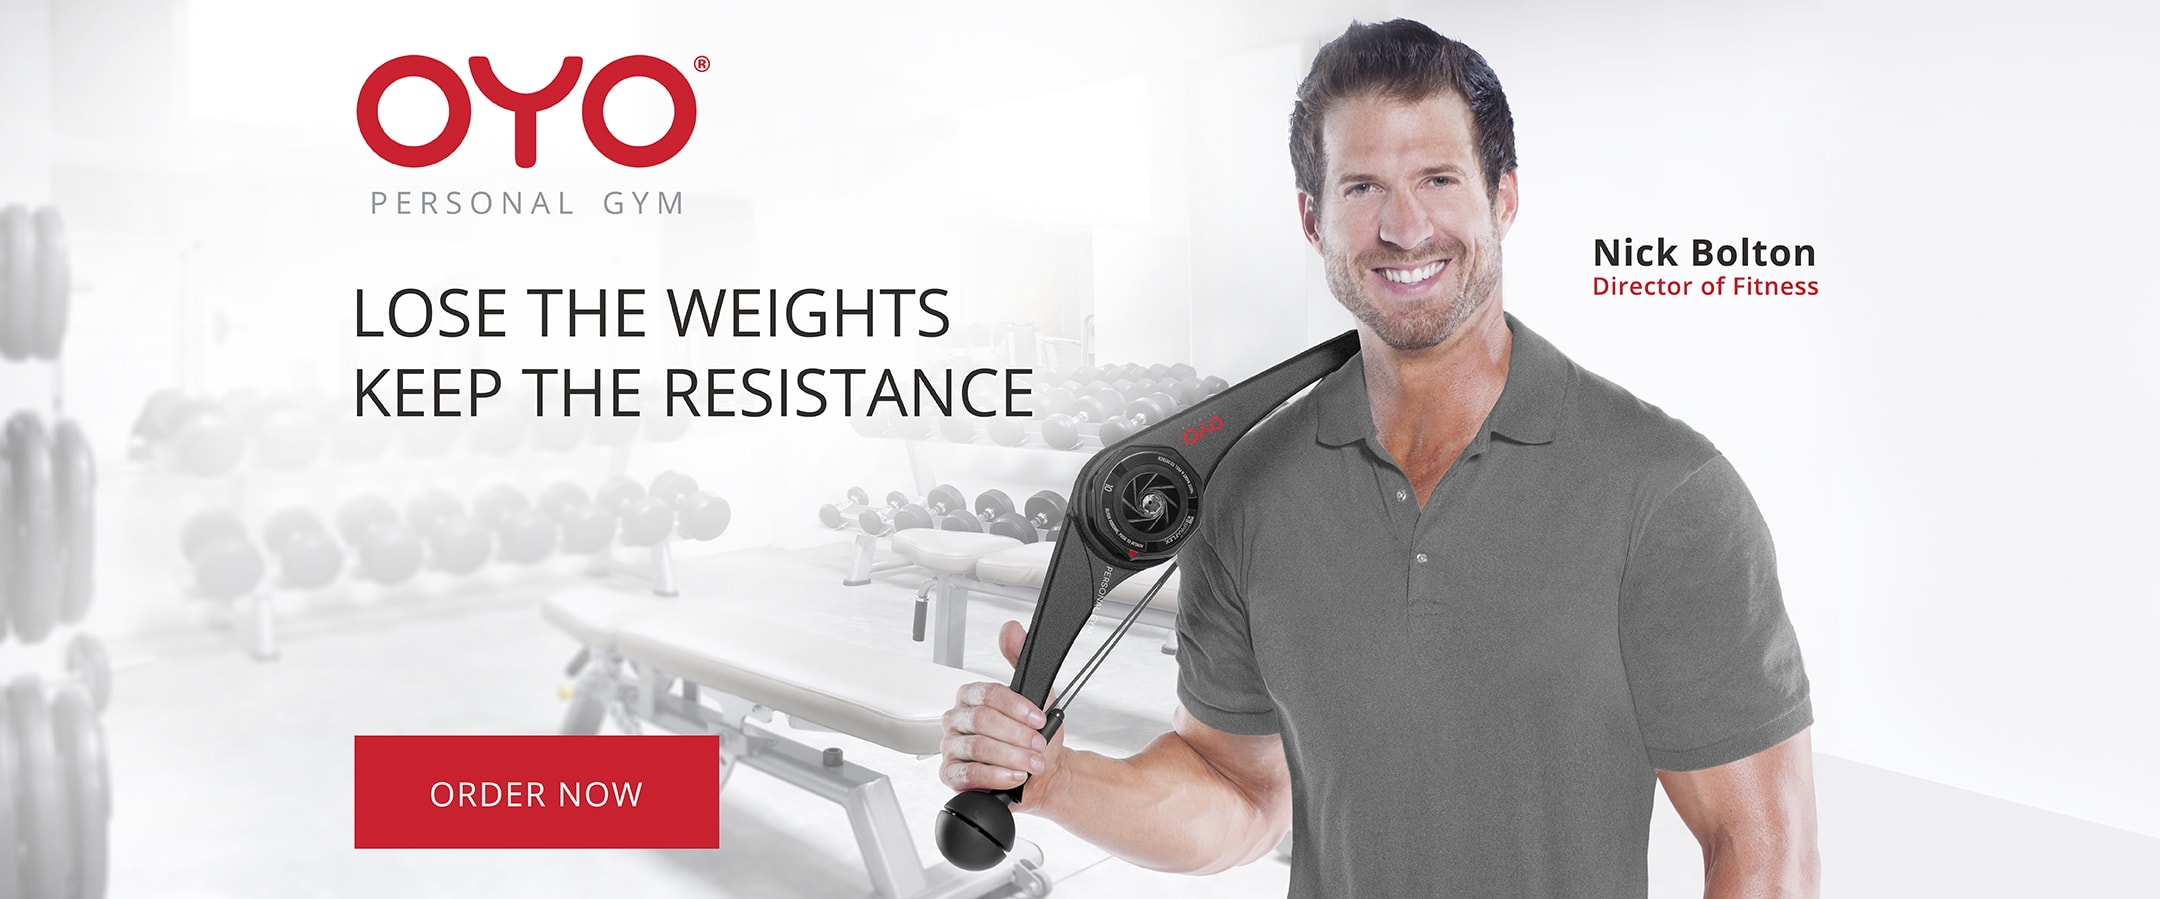 OYO Personal Gym Lose the Weights Keep the Resistance